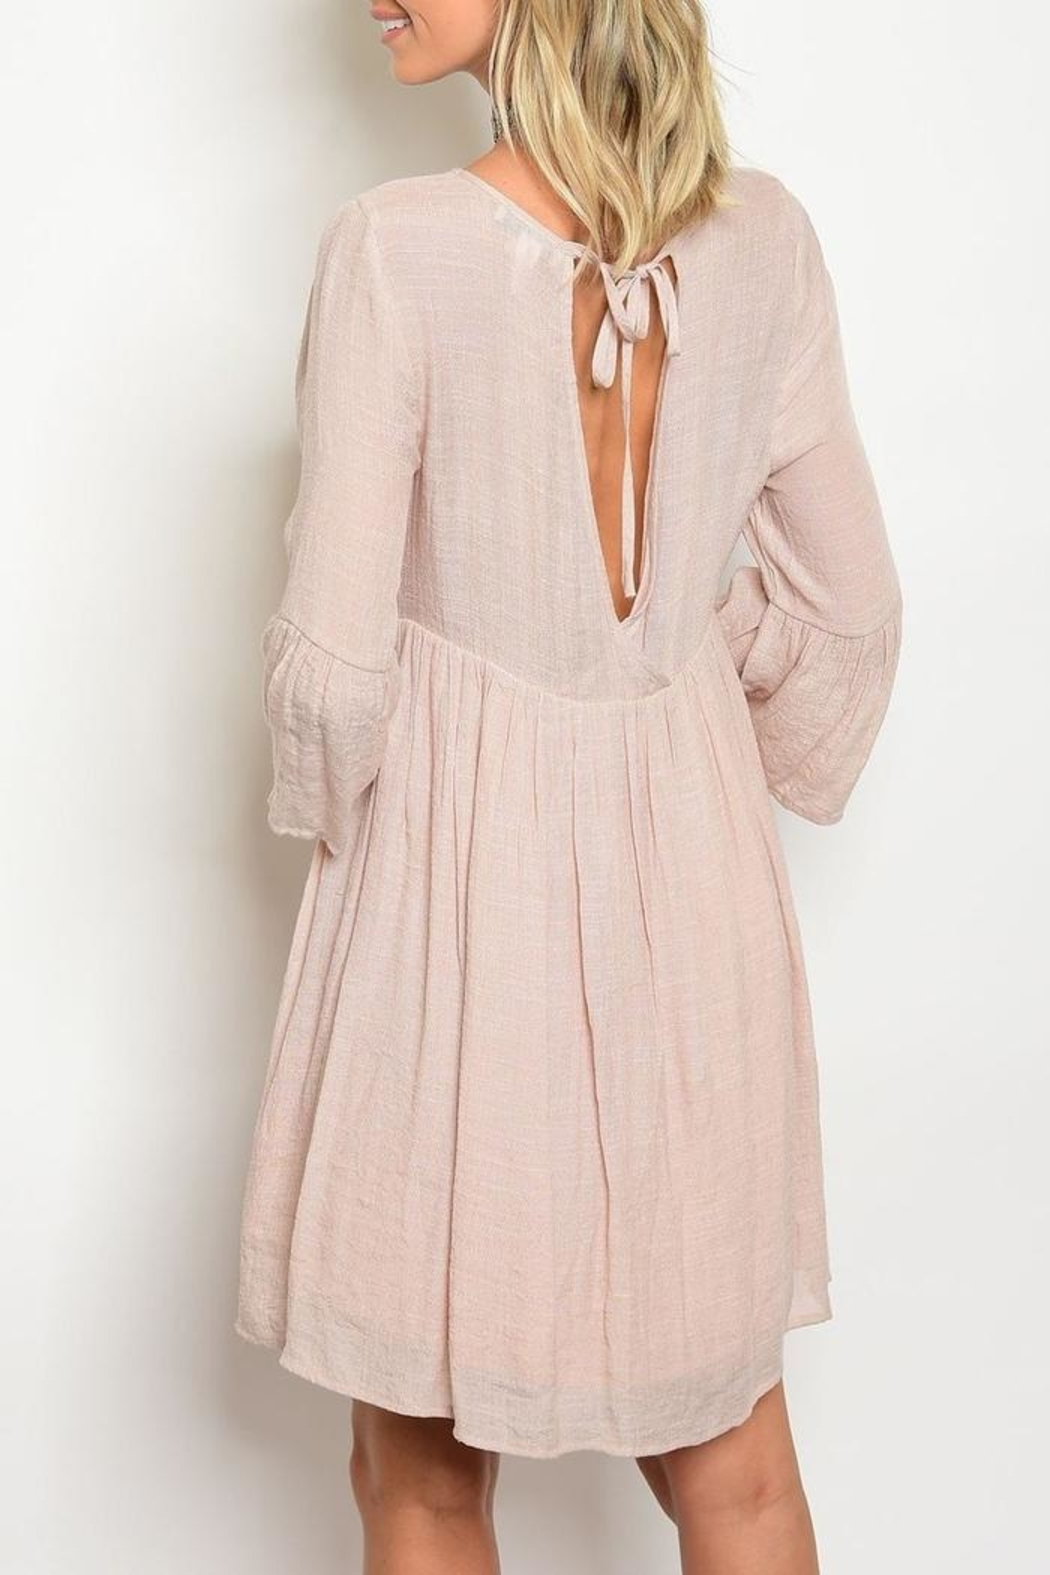 Tassels N Lace Mineral Wash Dress - Front Full Image